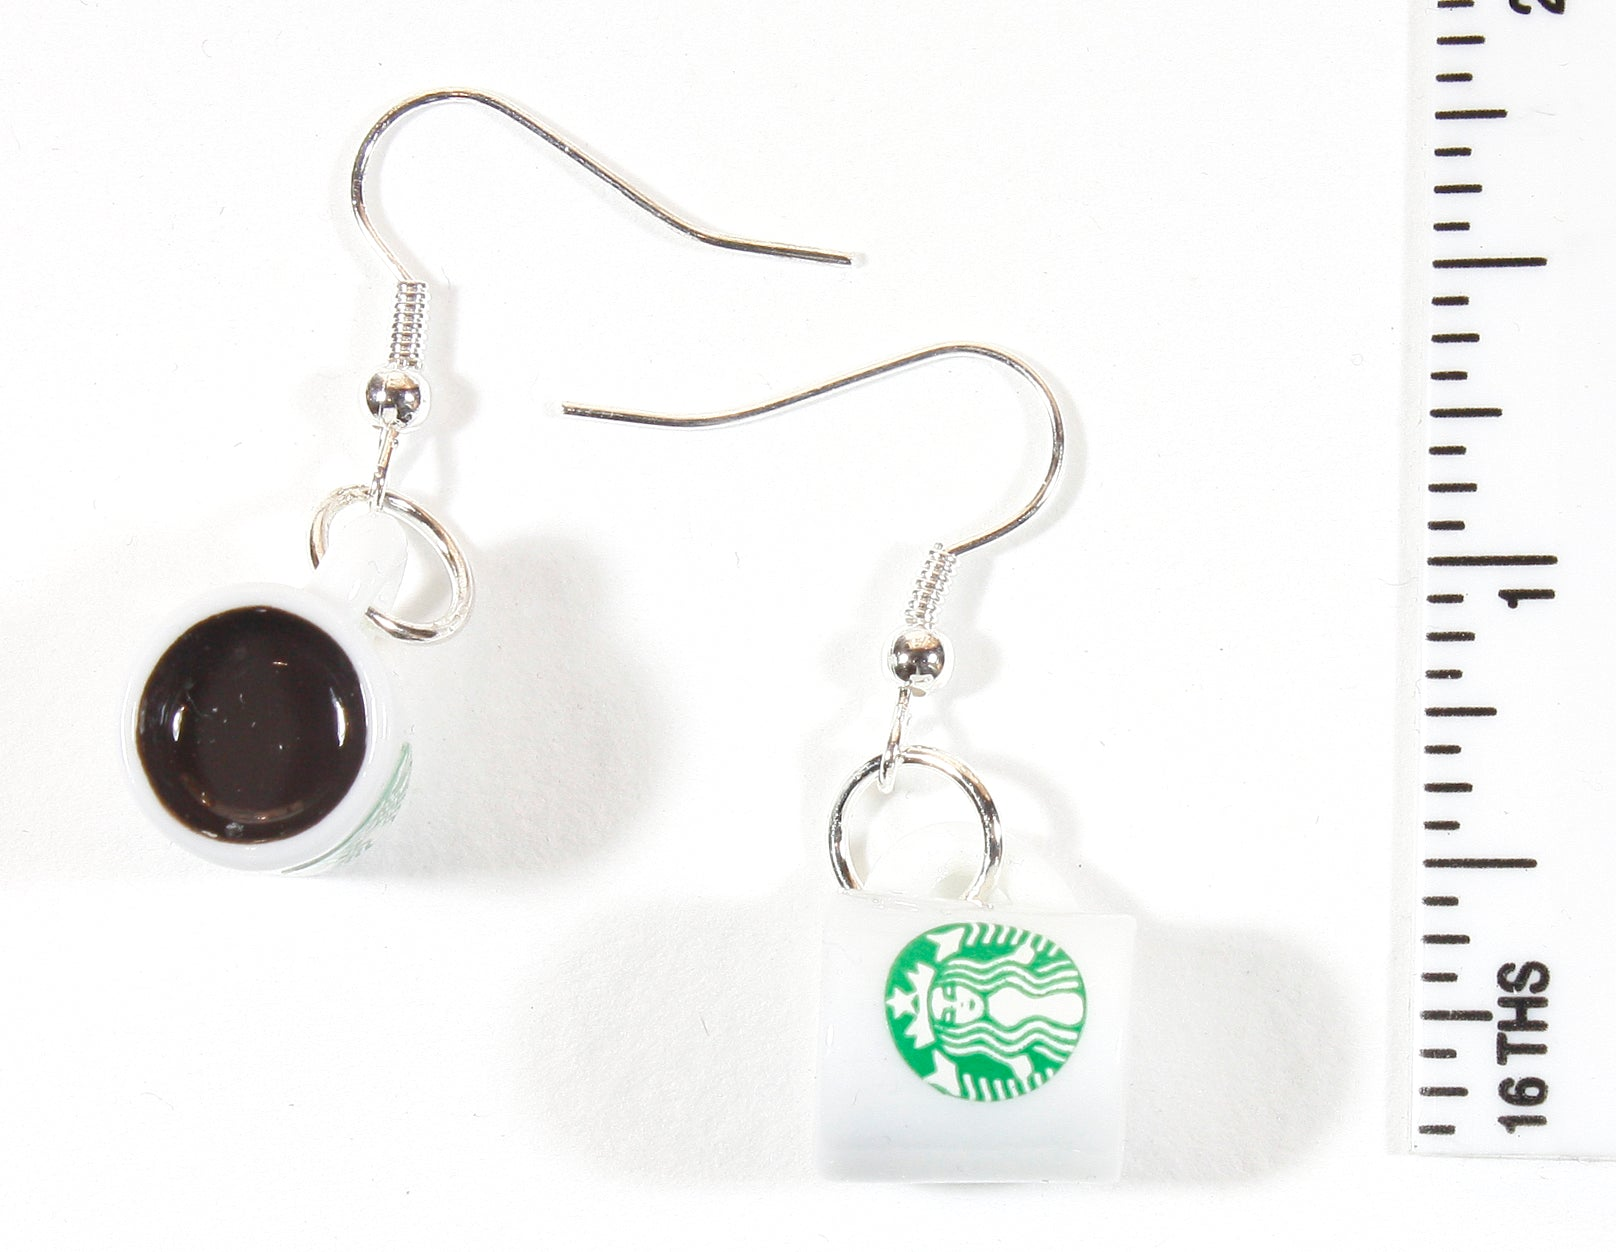 Coffee Lover, Coffee Cup Earrings with Starbucks Logo